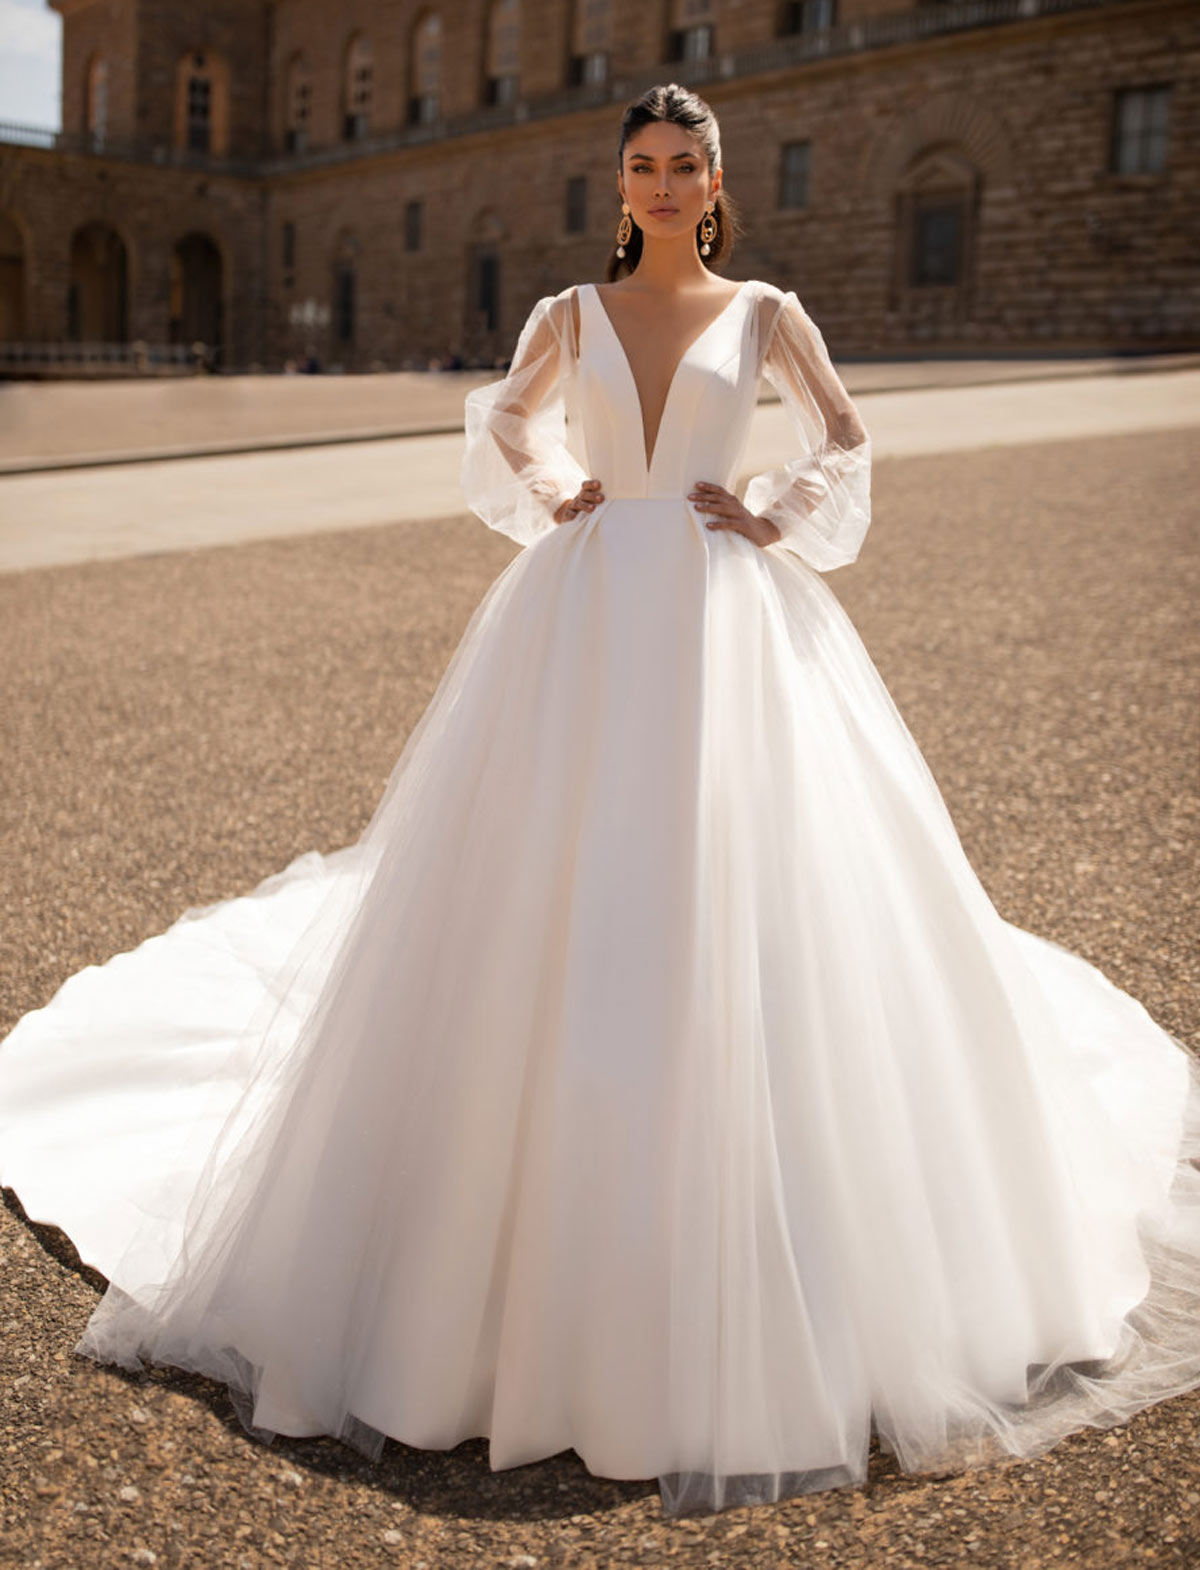 Wedding Dresses In Tuscany Italy Le Spose Di Mori,How To Choose A Wedding Dress Style